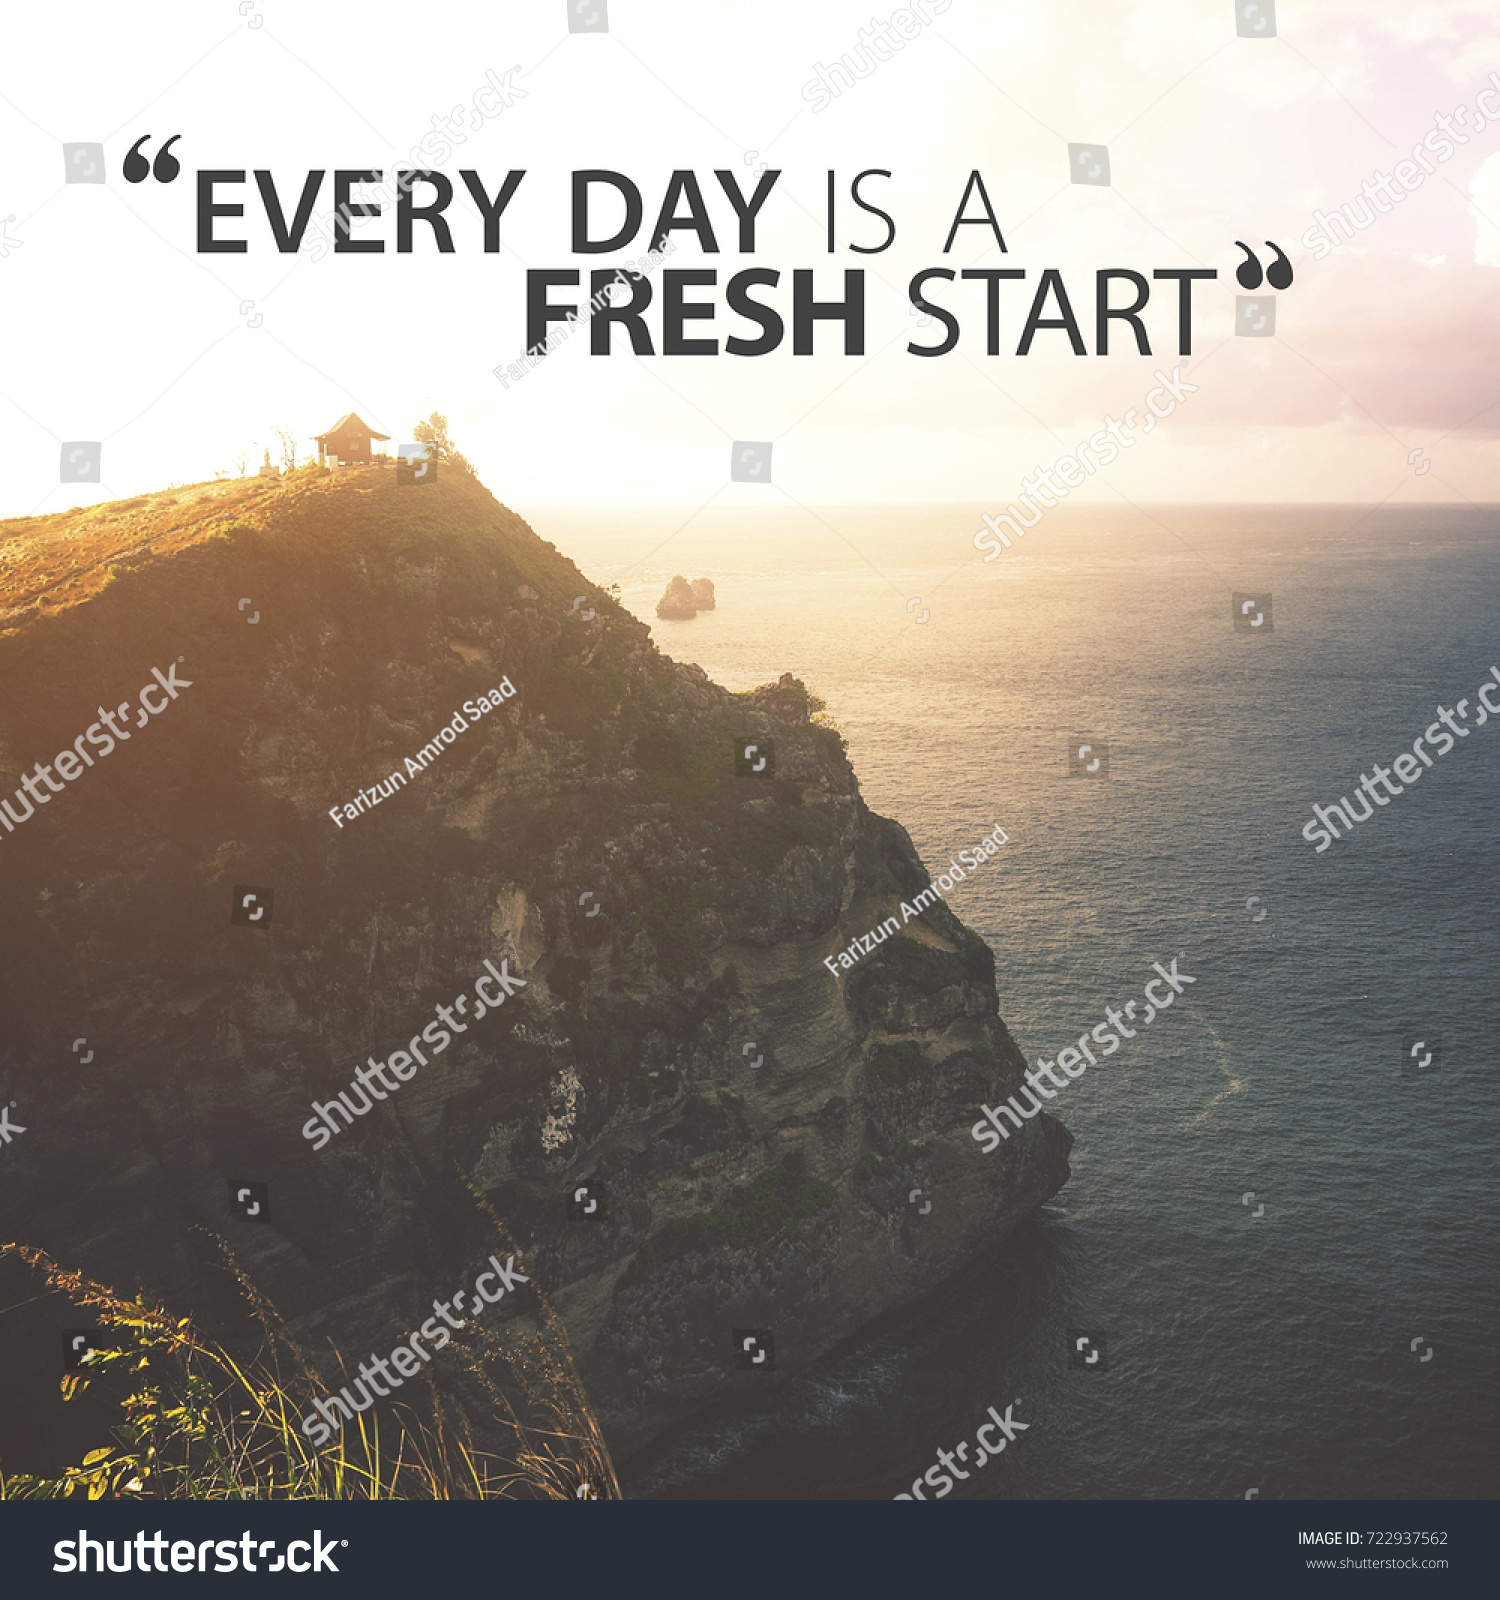 Morning Motivational Quotes Lettering Quotes Motivation Life Happiness Morning Stock Photo